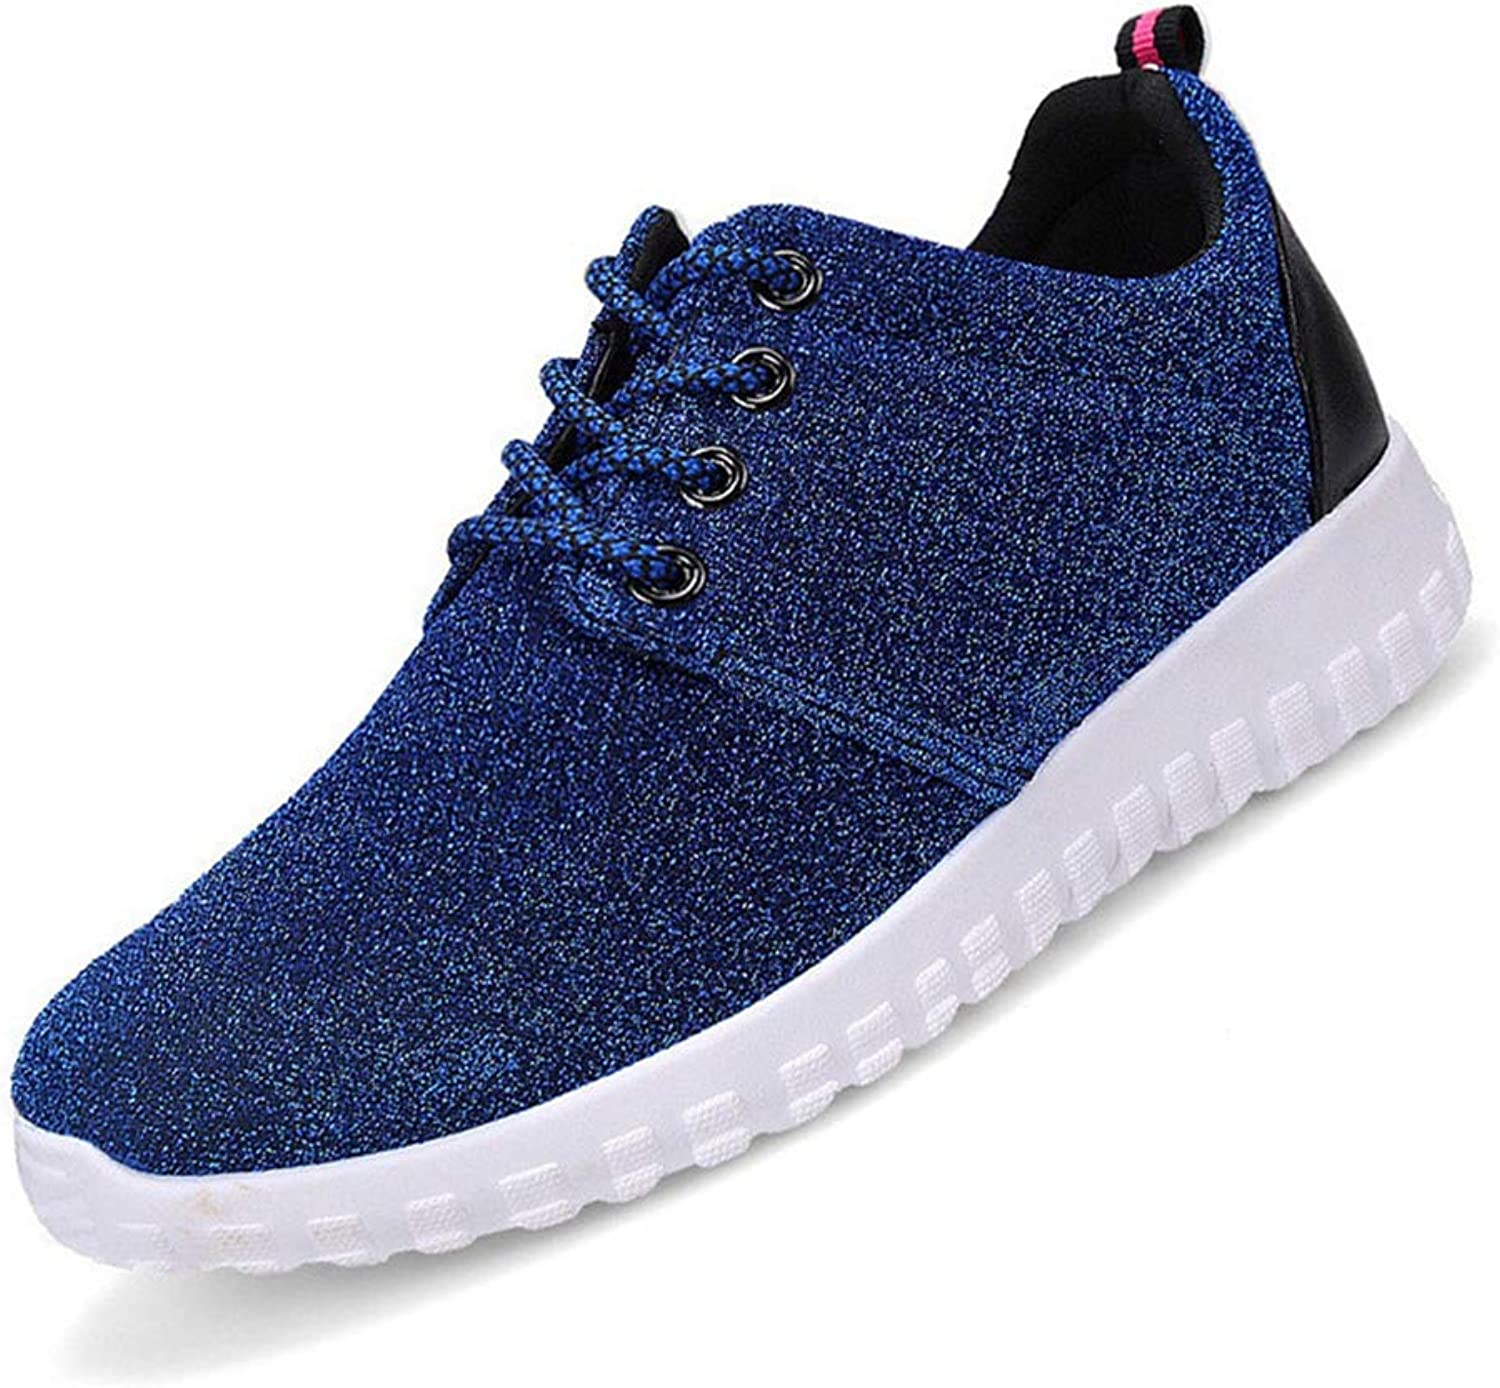 Zarbrina Wedges Sneakers for Women Running shoes Aautumn Solid Lightweight Athletic Sports Fitness Mesh Footwear